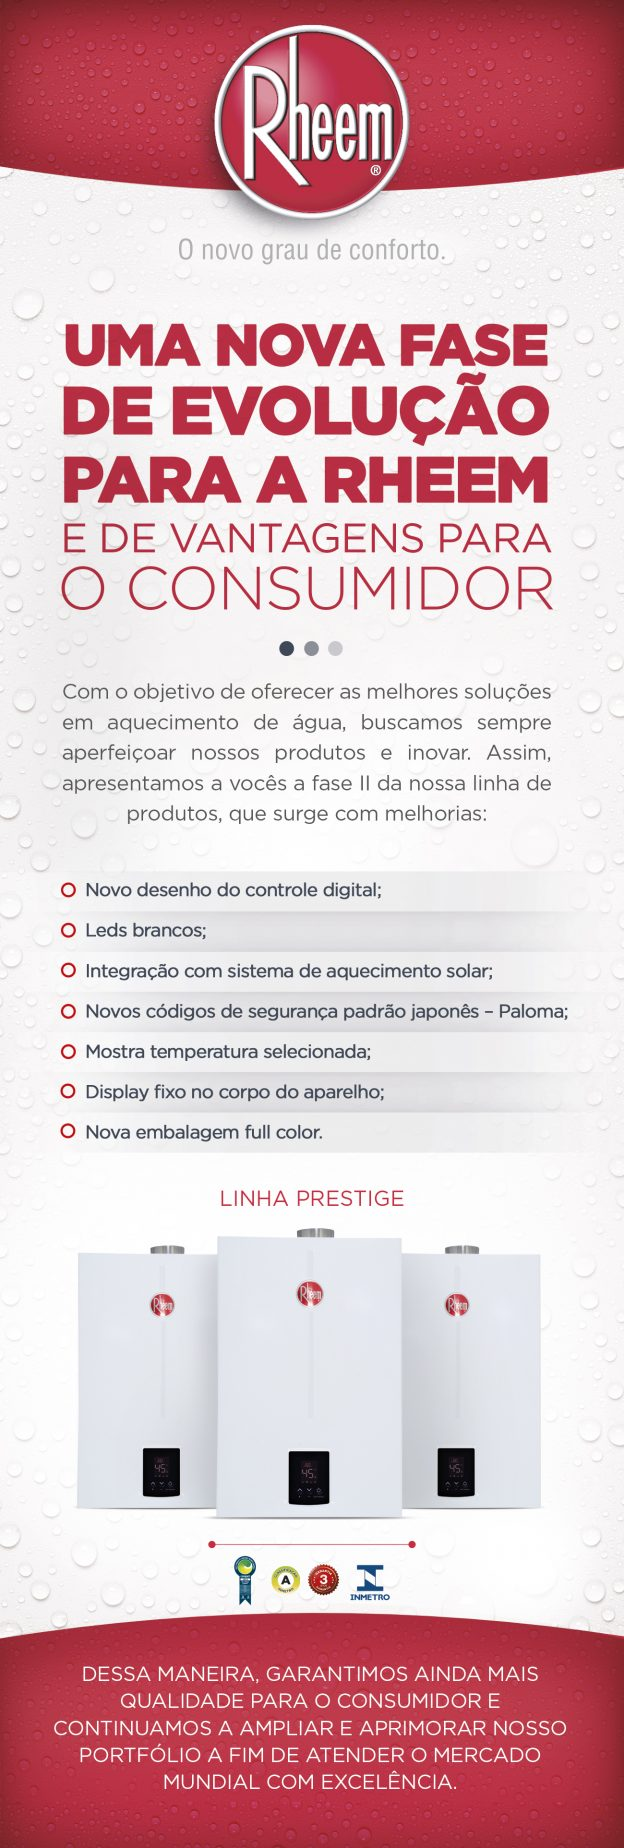 5906-email-marketing-fase-ii-produtos